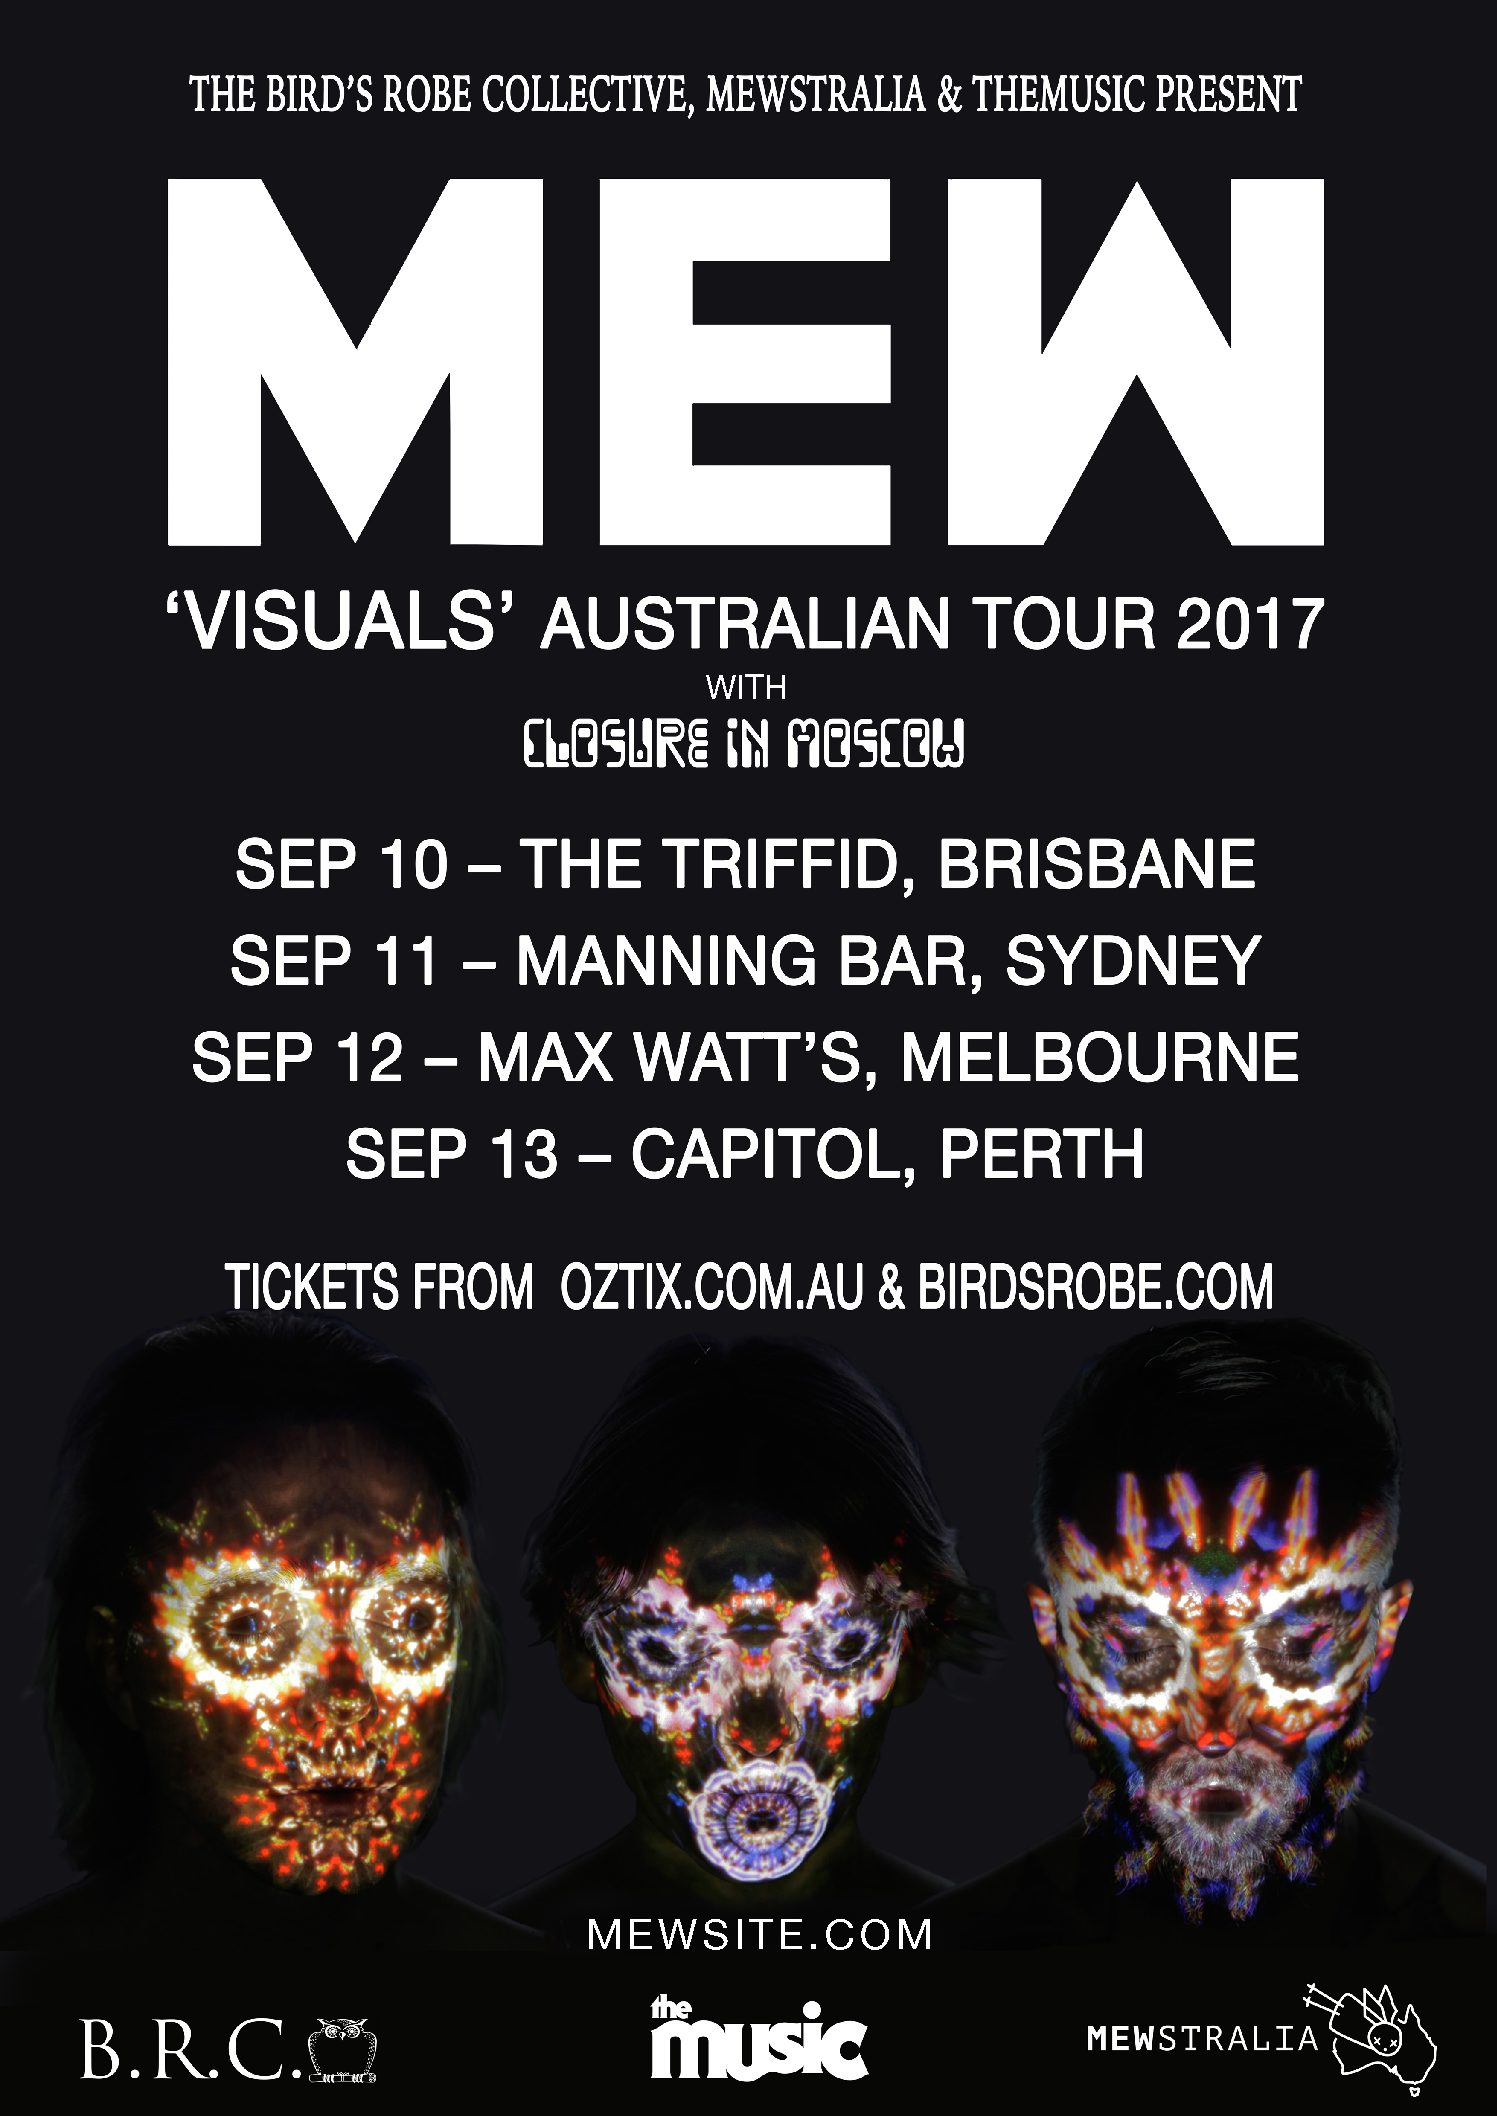 MEW announce Australian tour with Closure in Moscow